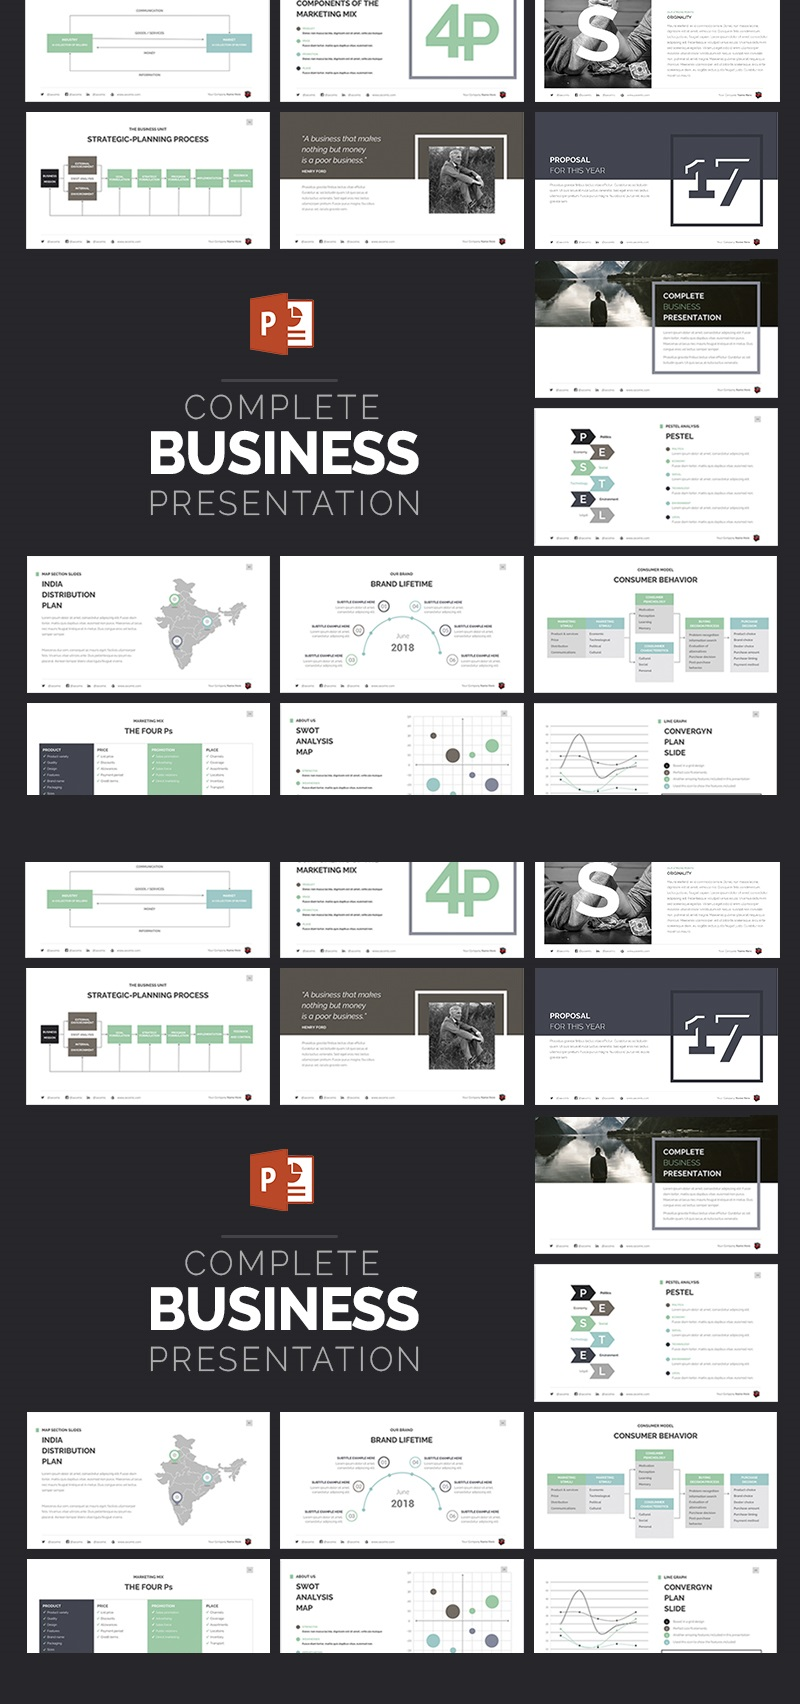 Complete Business Presentation Template PowerPoint №63510 - captura de tela